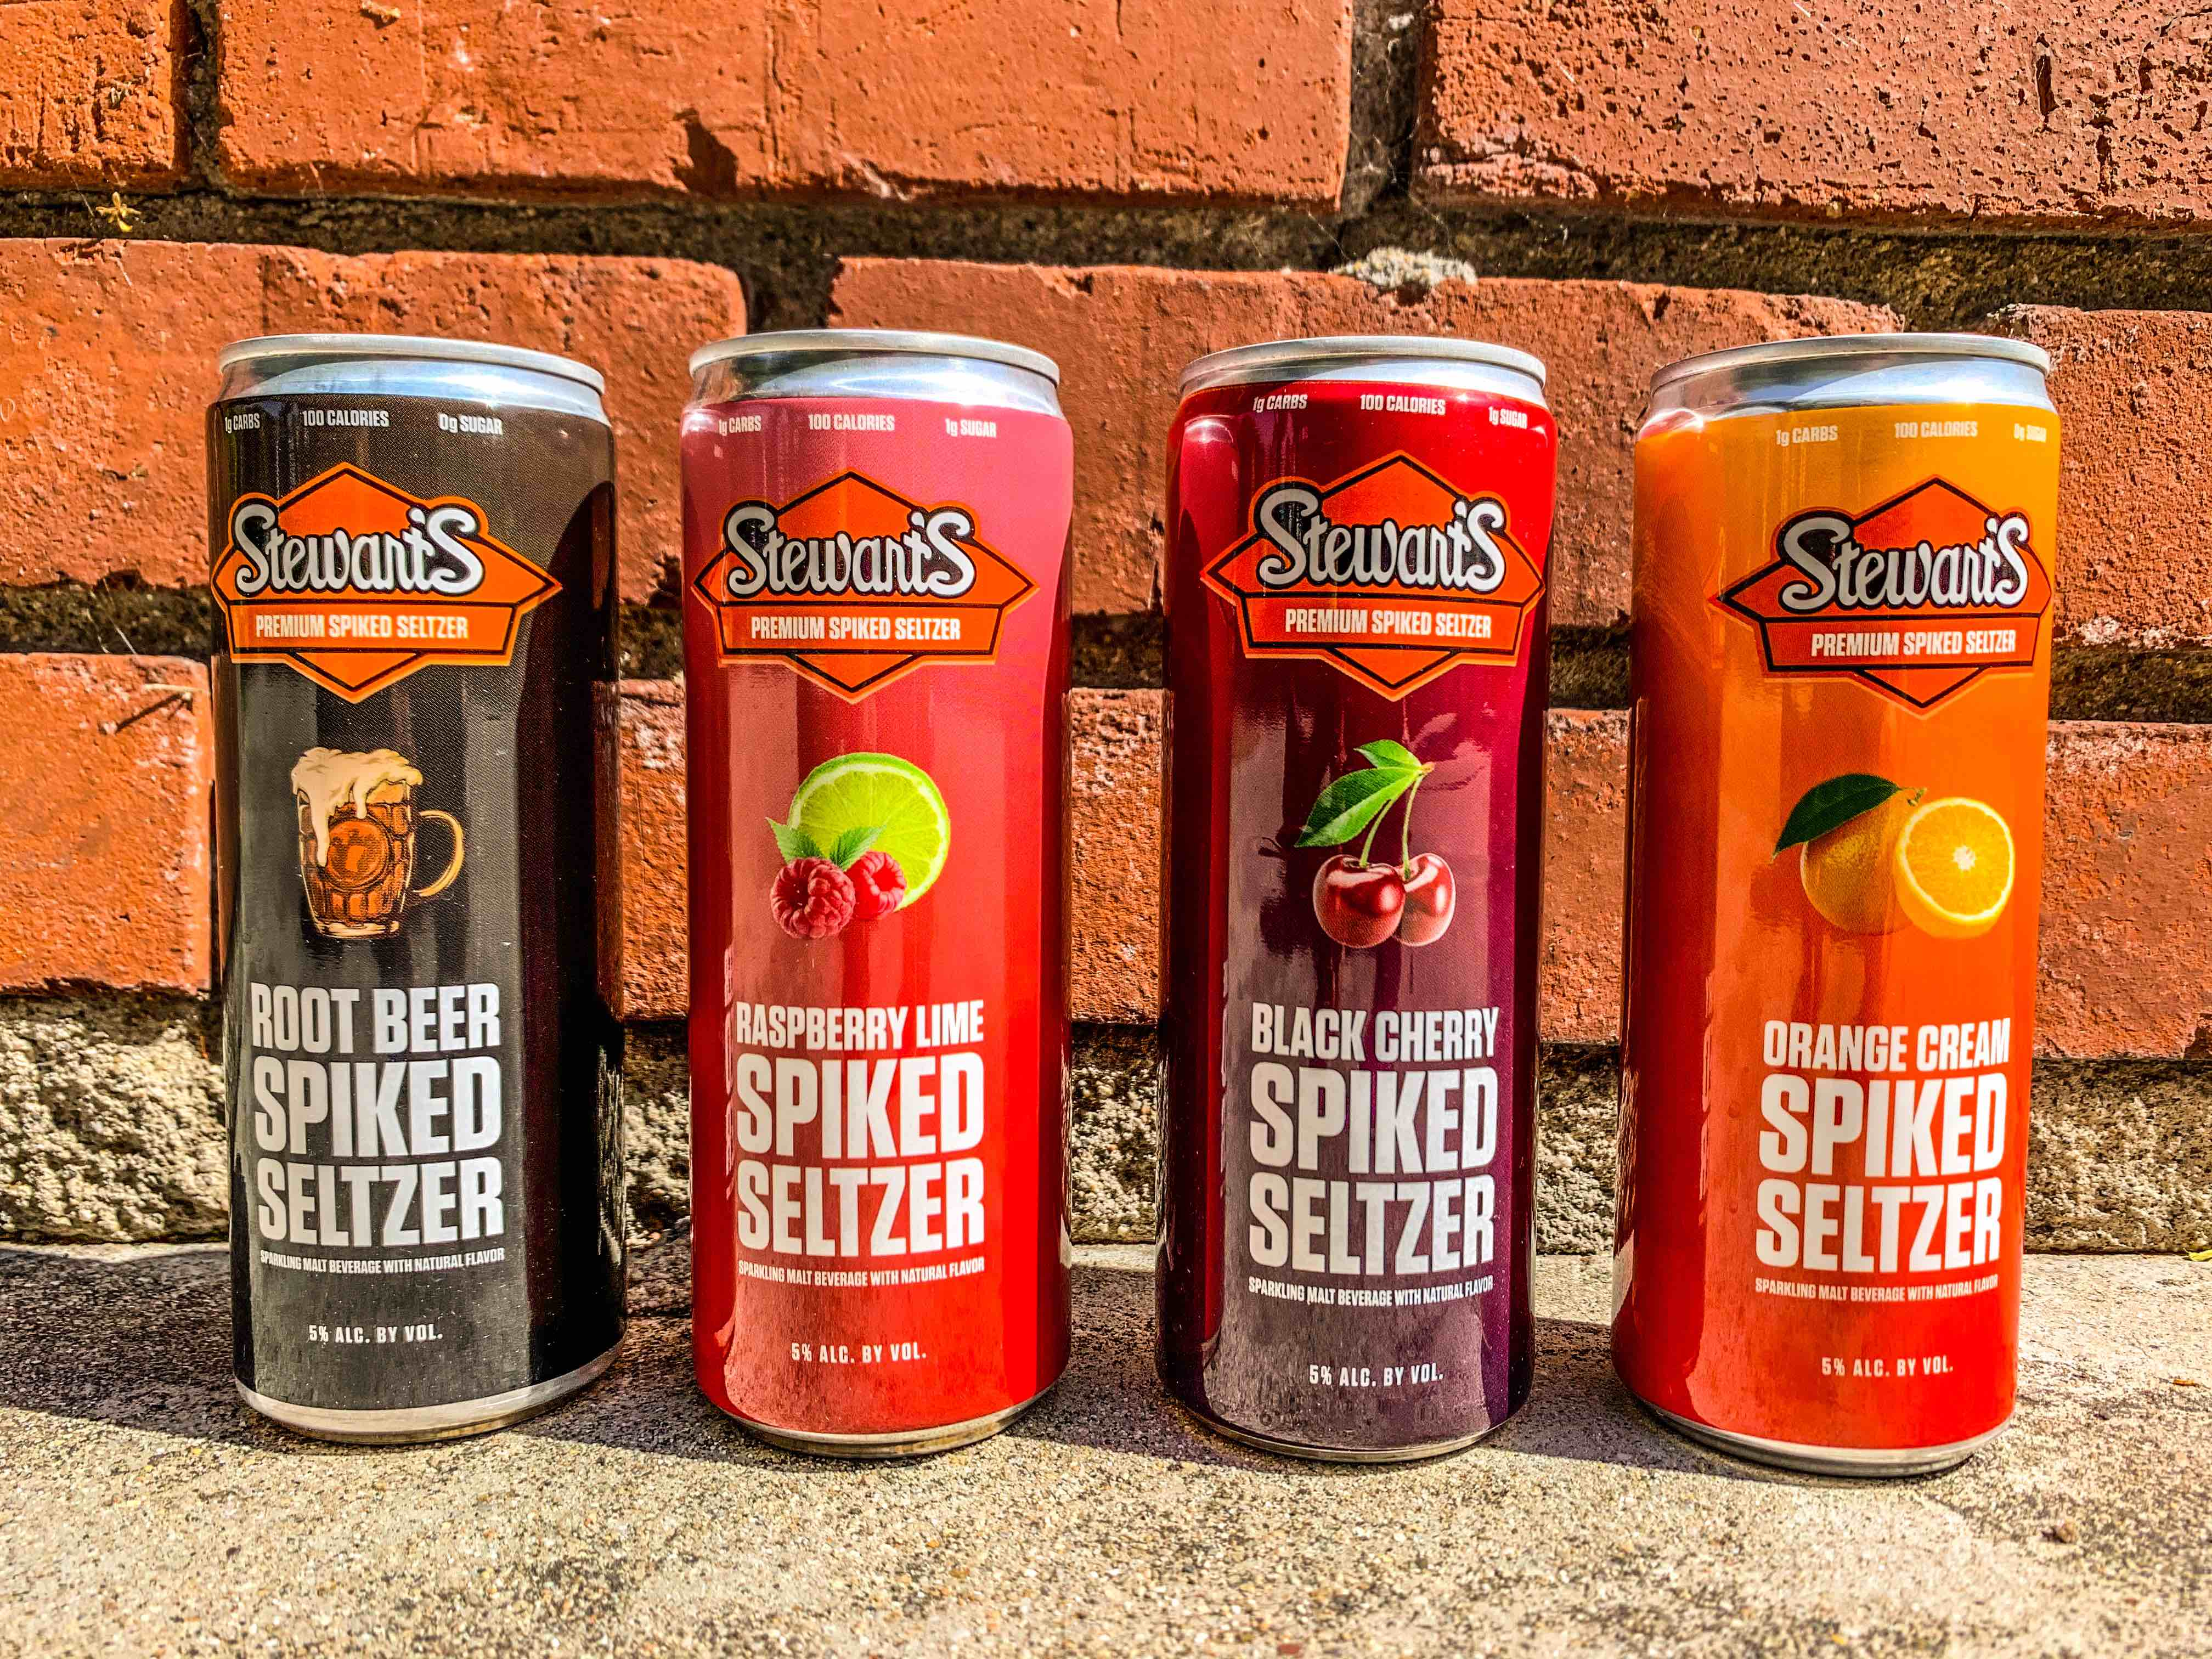 Stewart S Spiked Seltzer Review A Hard Seltzer That Tastes Like Pure Nostalgia Brobible